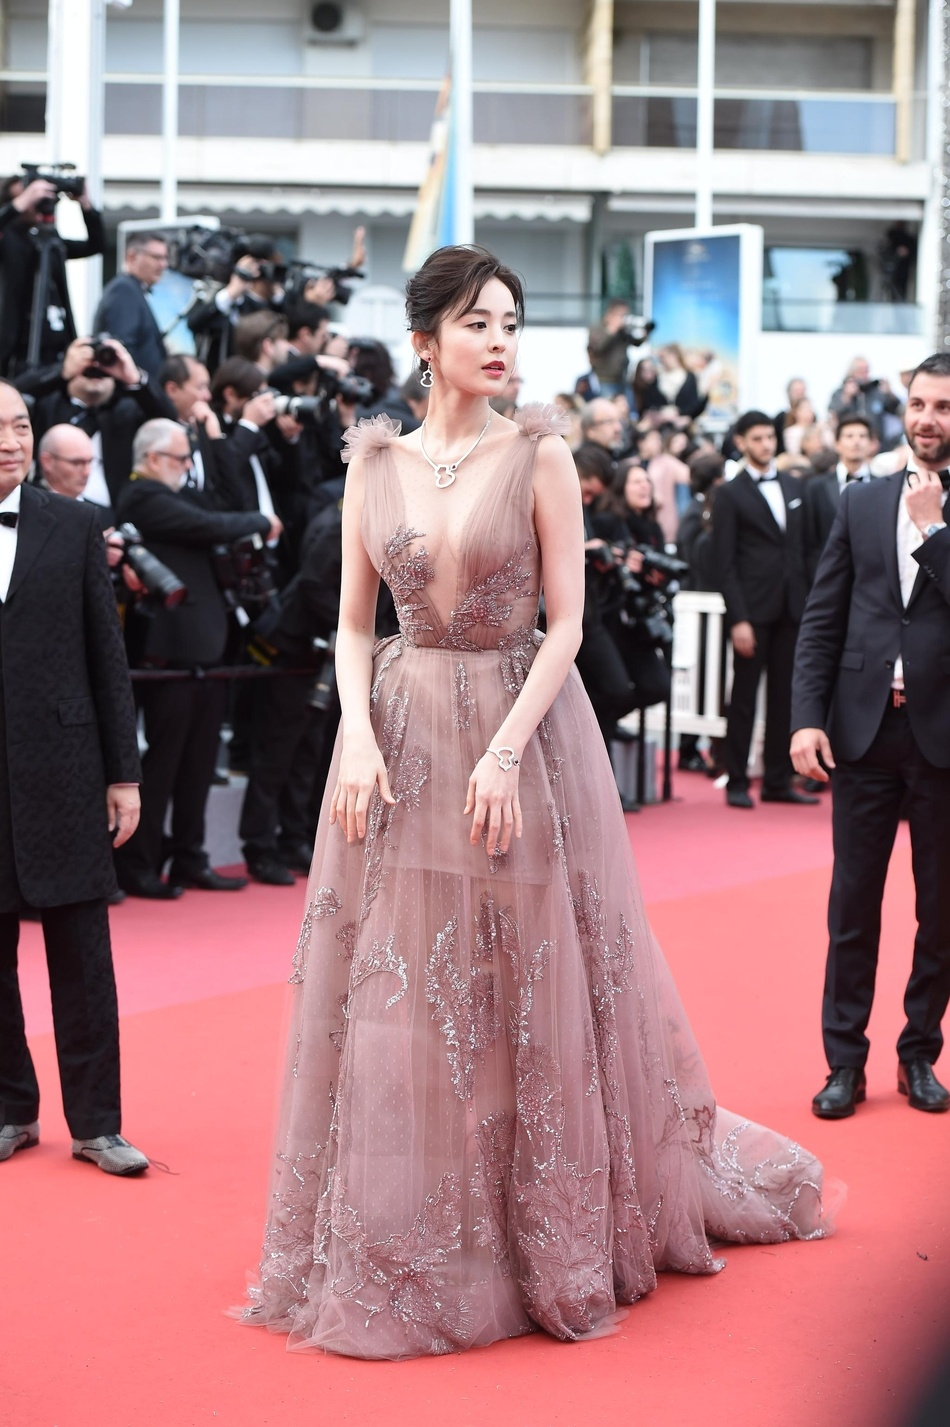 Tham do Cannes anh 1